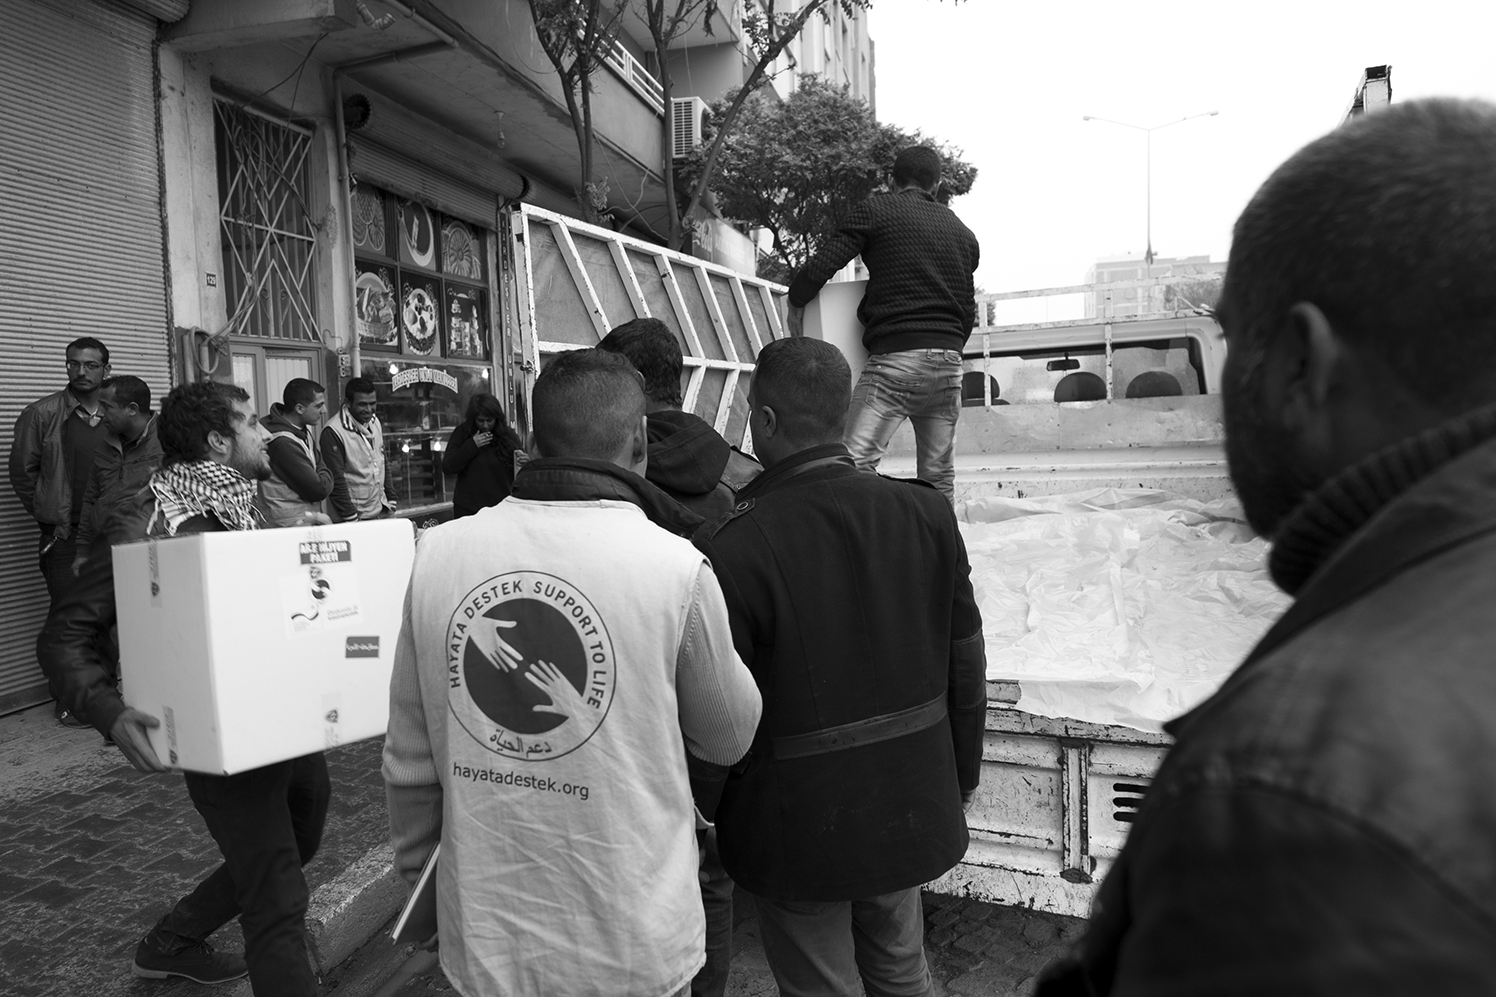 Volunteers and Hayata Destek workers loading relief package in the back of a truck in the center of Suruç. The boxes contain kitchenwear andhygiene products.